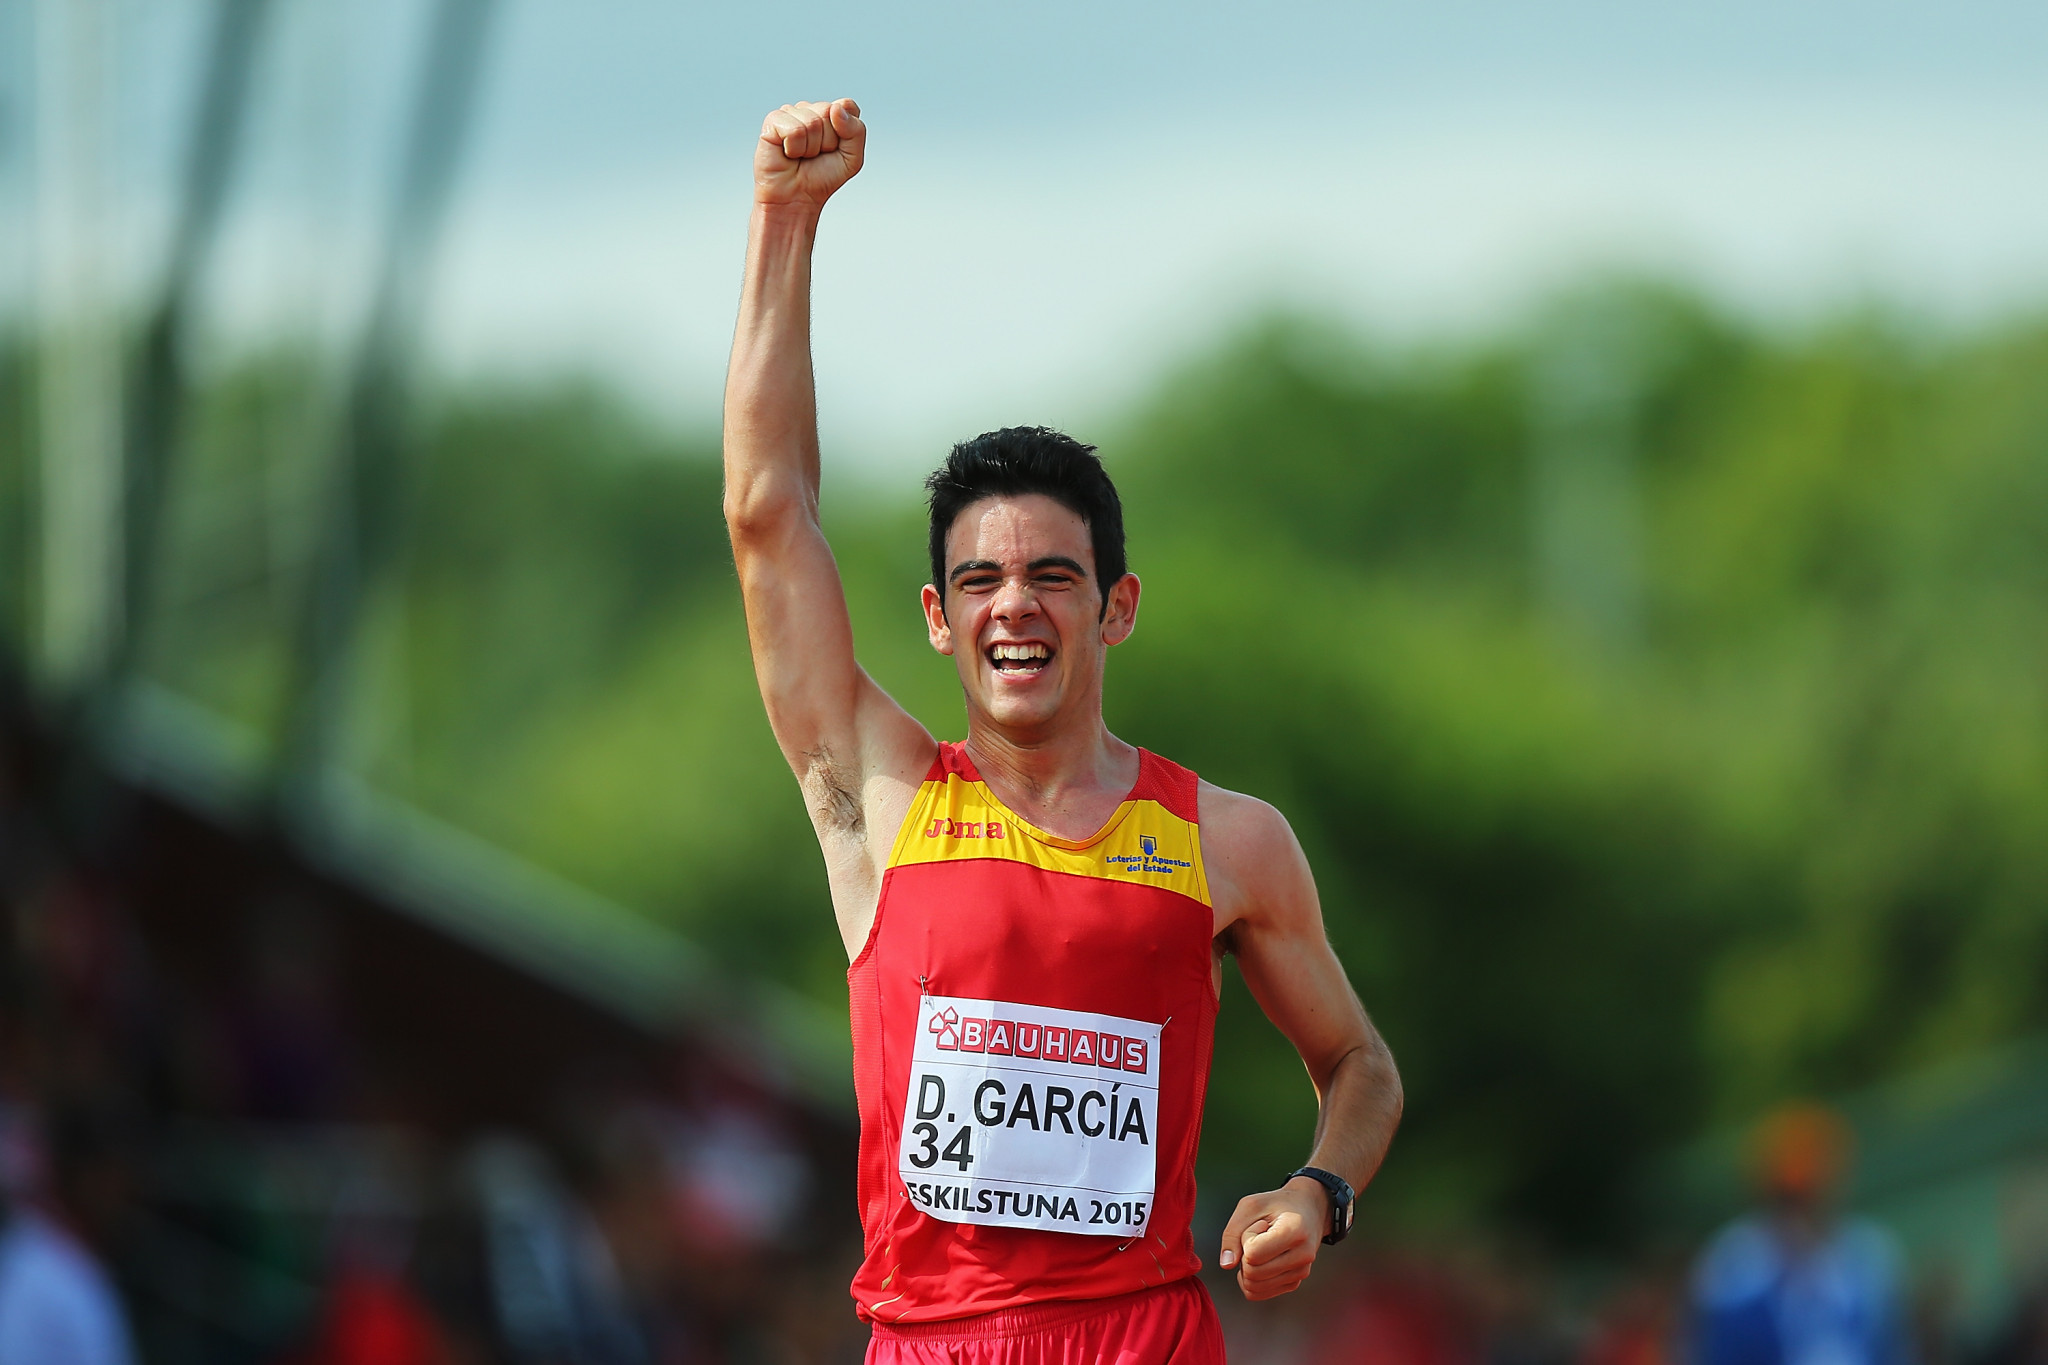 Spain's Diego García is considered the favourite in the men's 20km race ©Getty Images